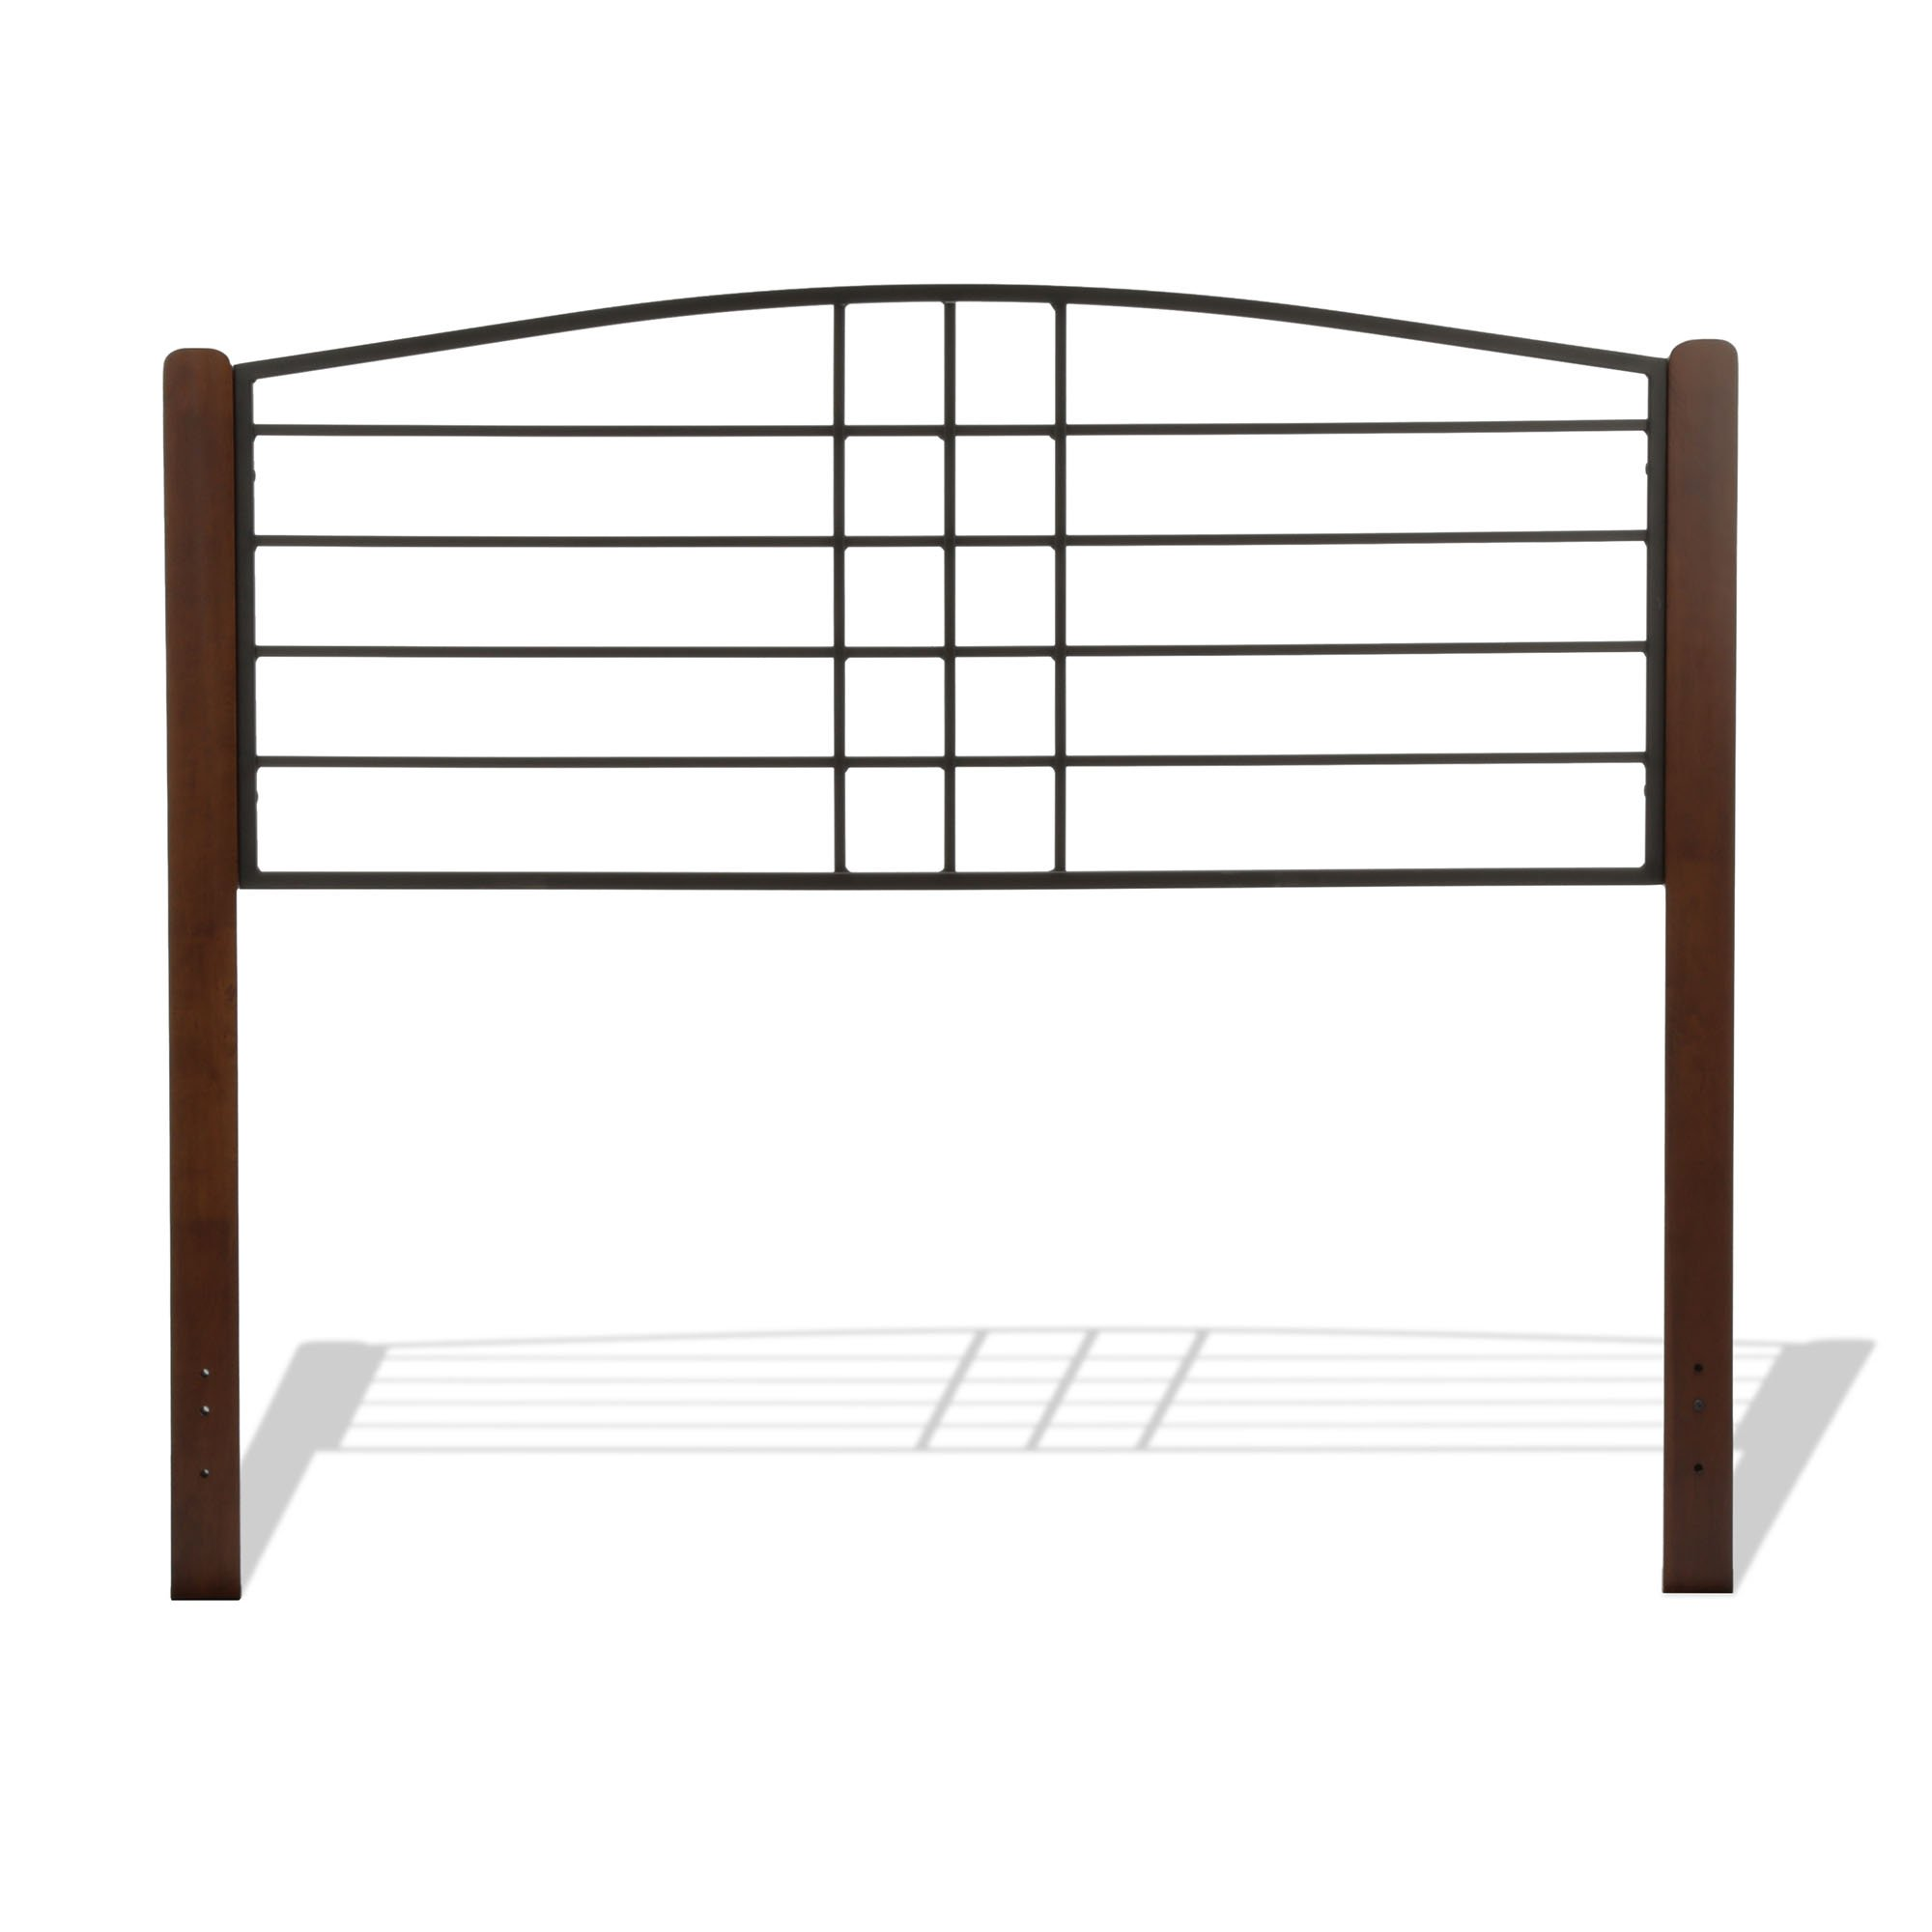 Fashion Bed Group Dayton Metal Headboard Panel with Slight Arched Design and Flat Wooden Posts, Black Grain Finish, Twin